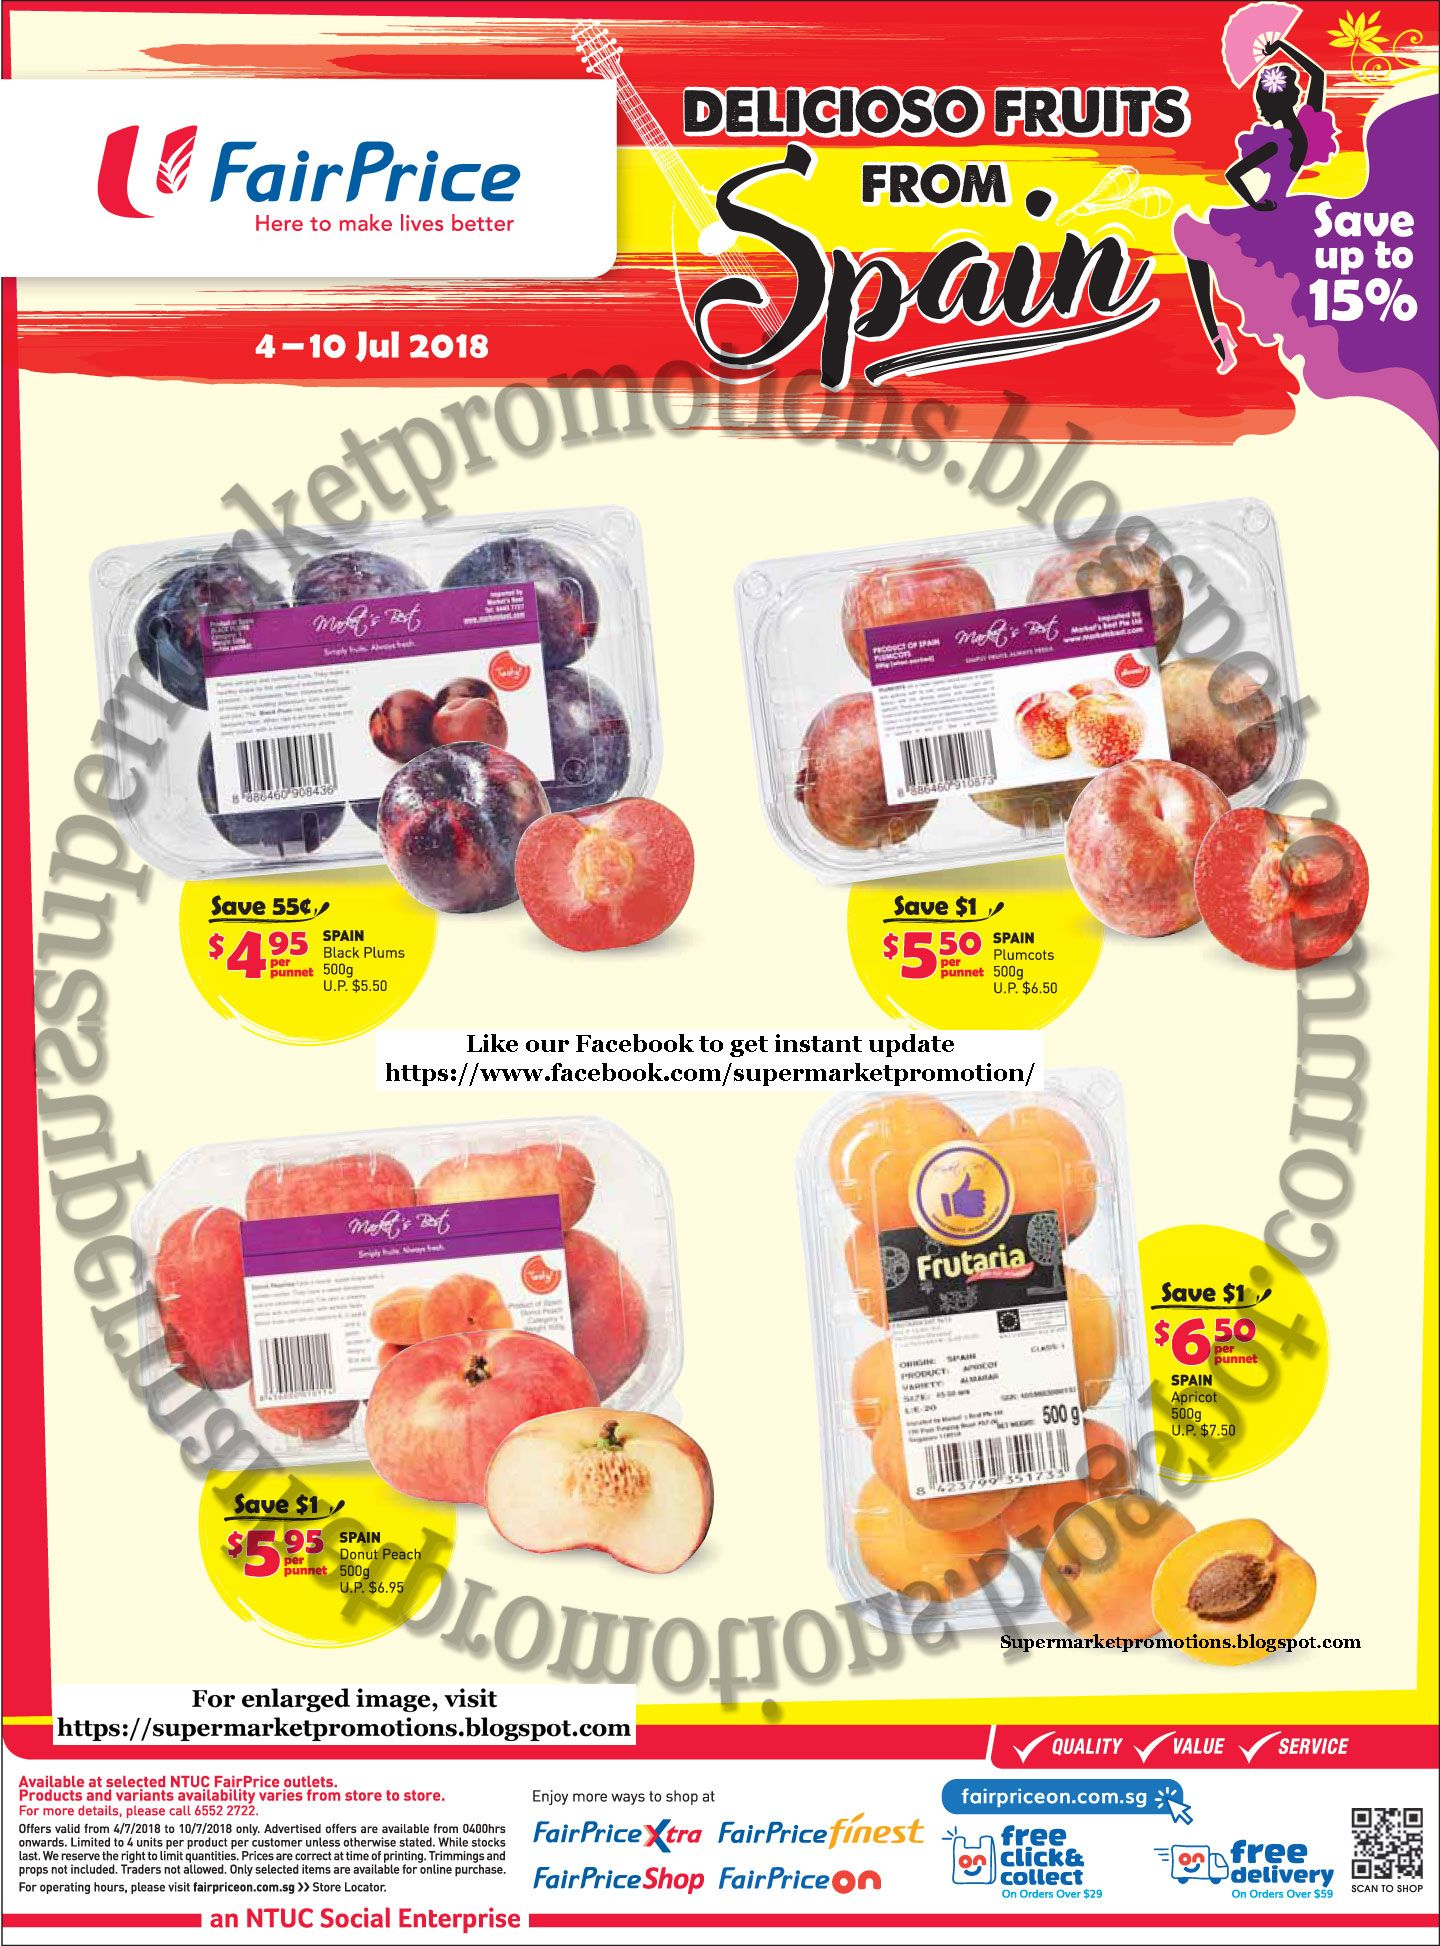 Pin by Reb Venus on Supermarket Promotions | Fruit, Donut